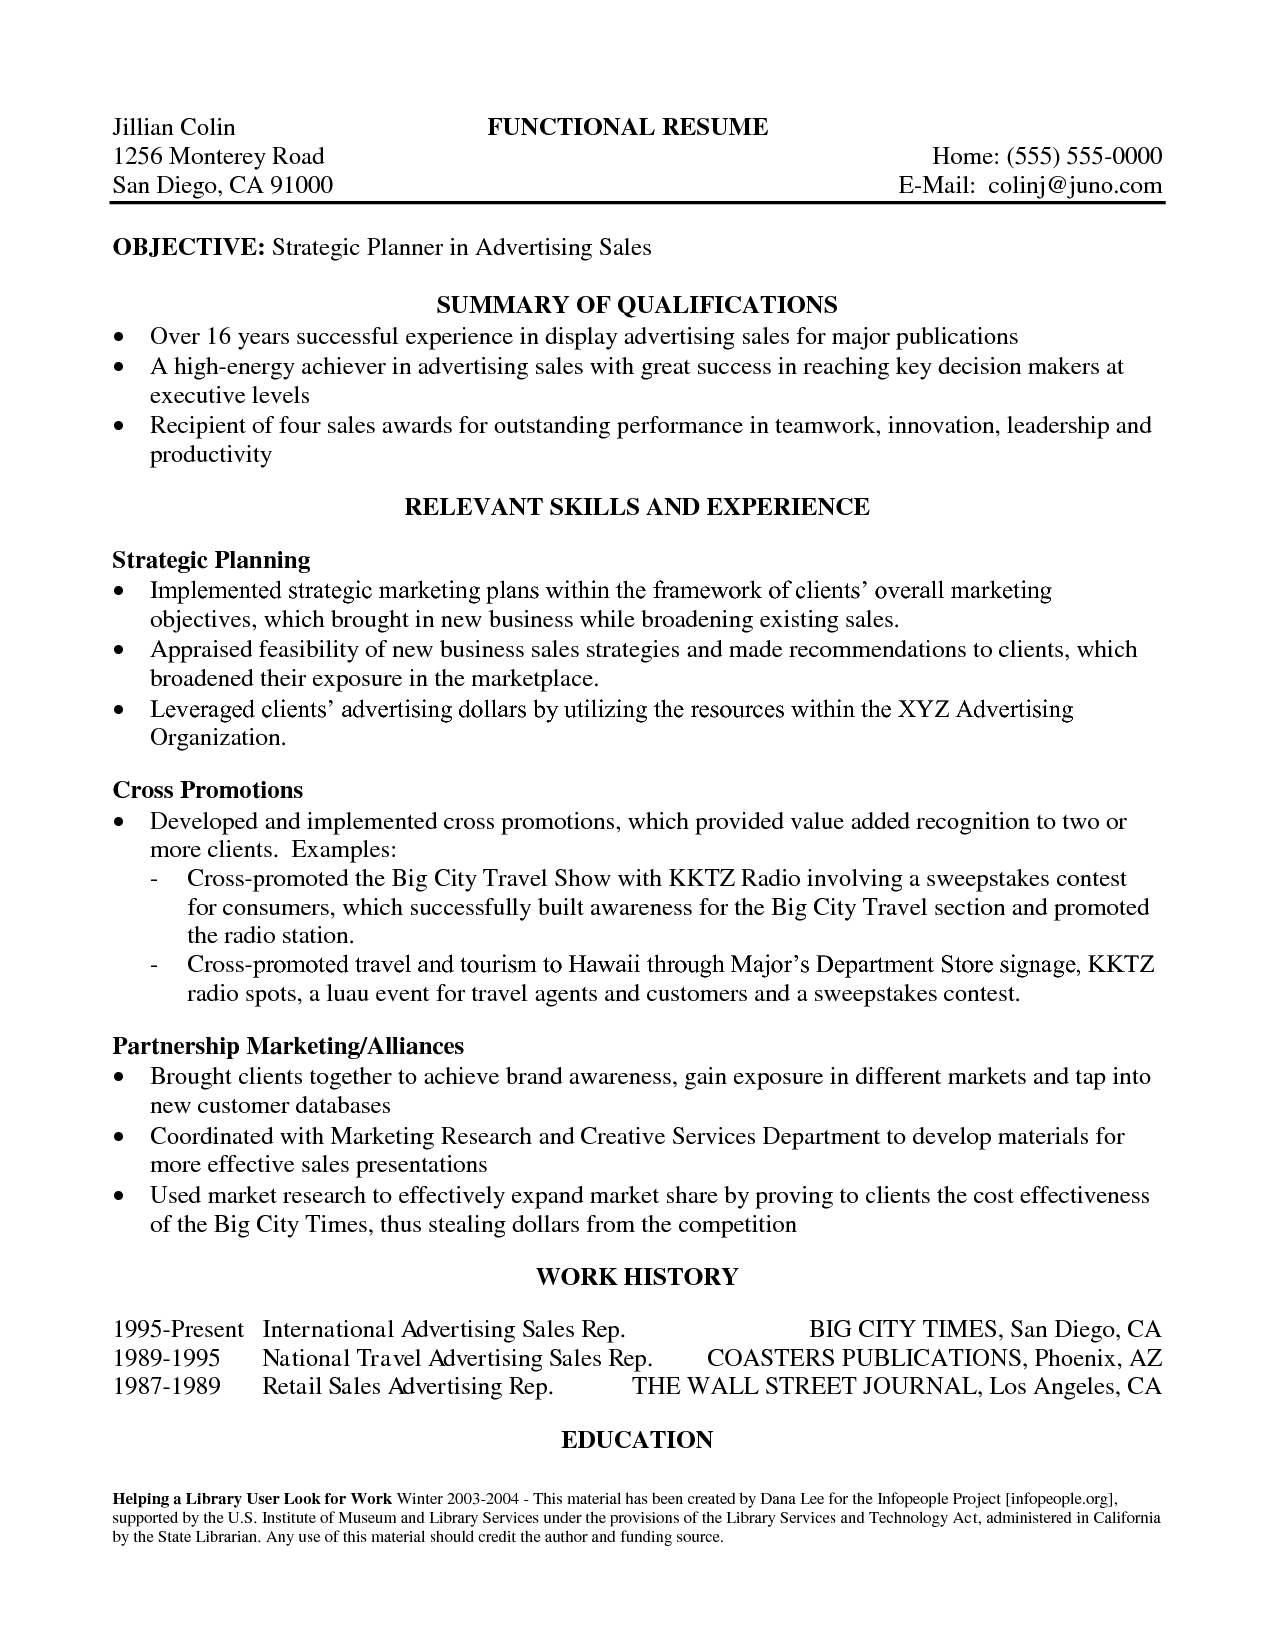 Example Of A Summary For A Resume Delectable Resume Examples Summary  Resume Examples  Pinterest  Resume Examples